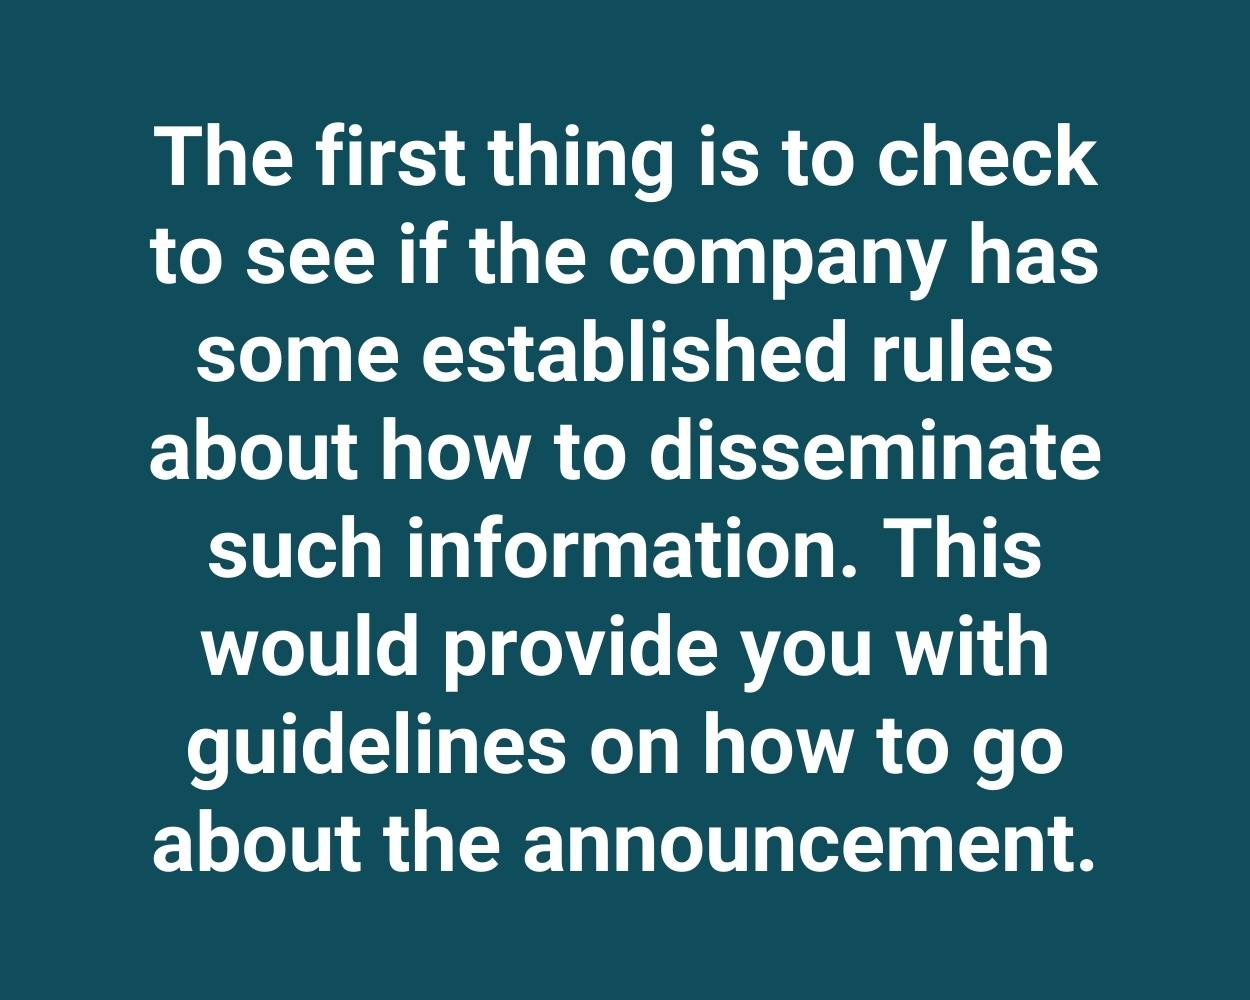 The first thing is to check to see if the company has some established rules about how to disseminate such information. This would provide you with guidelines on how to go about the announcement.